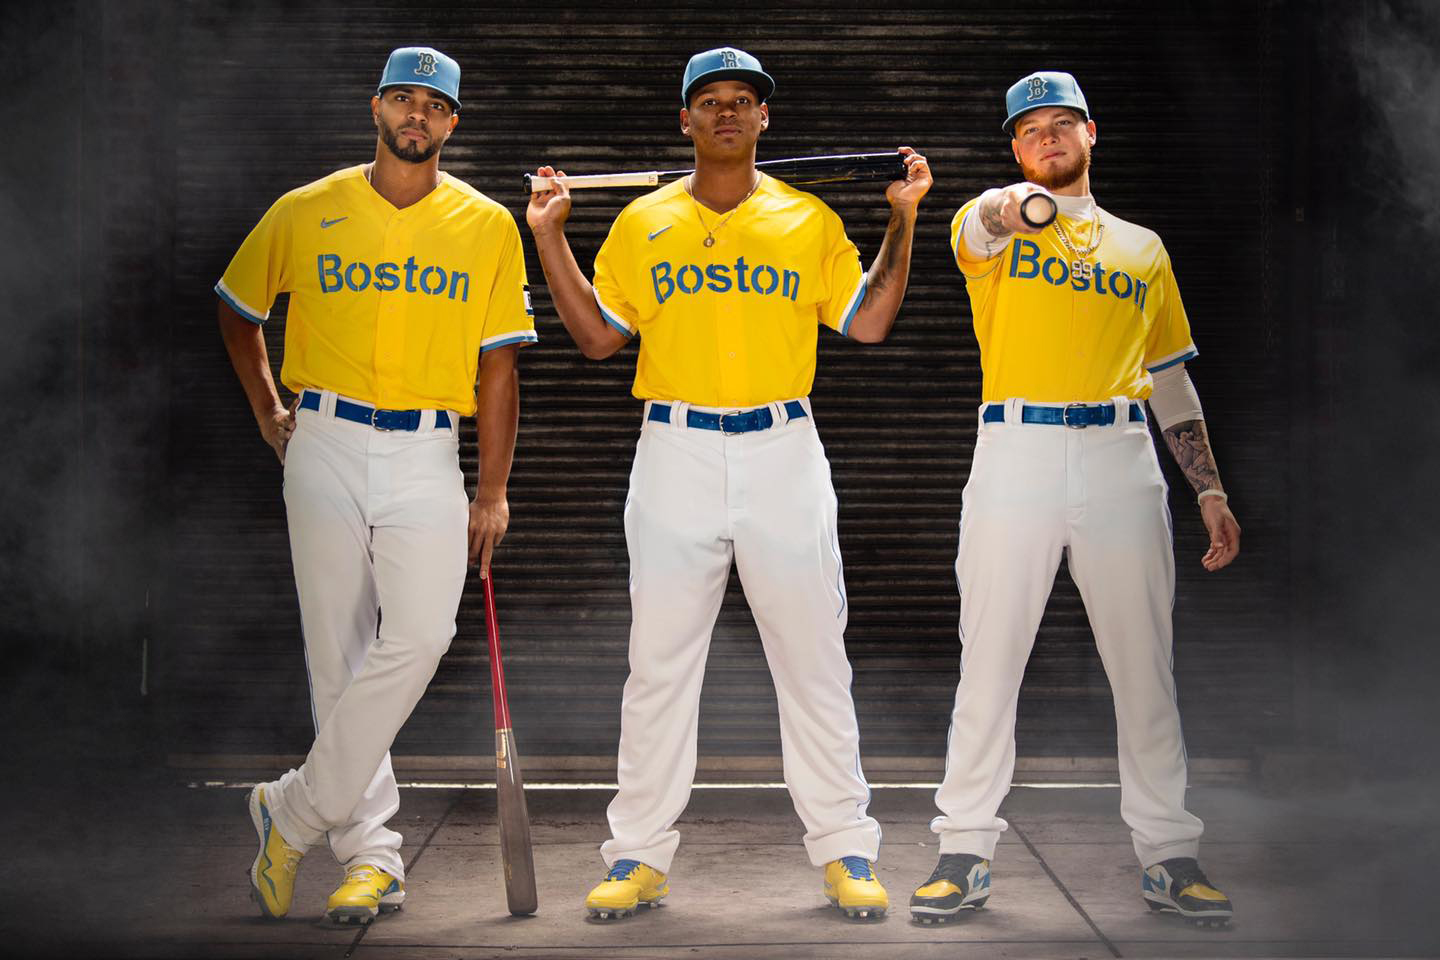 Boston Red Sox Debut New Yellow and Blue Uniforms Inspired by Boston Marathon